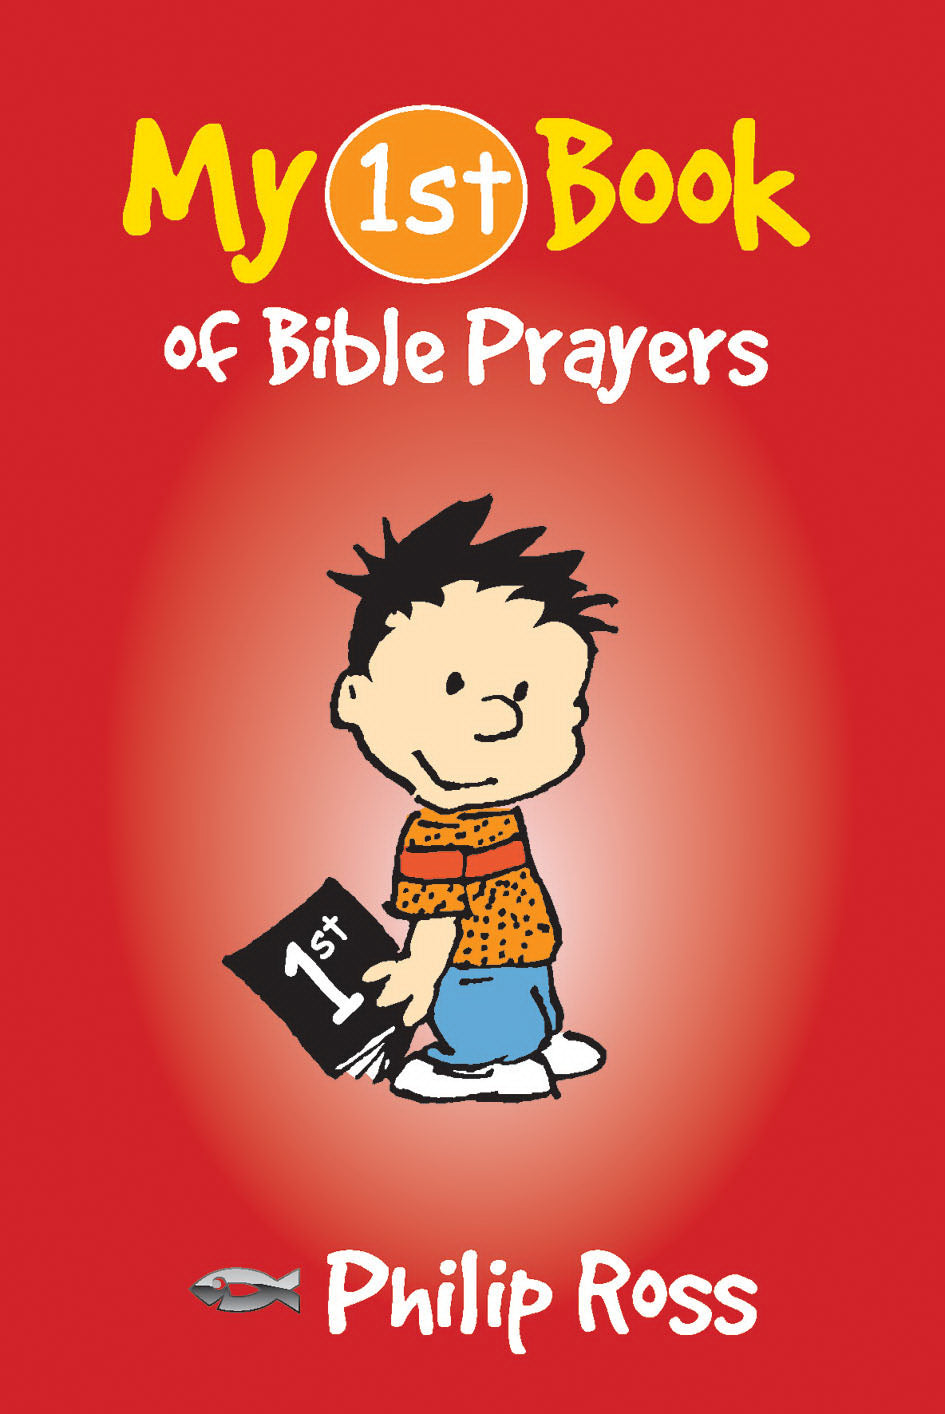 My 1st Book Of Bible Prayers